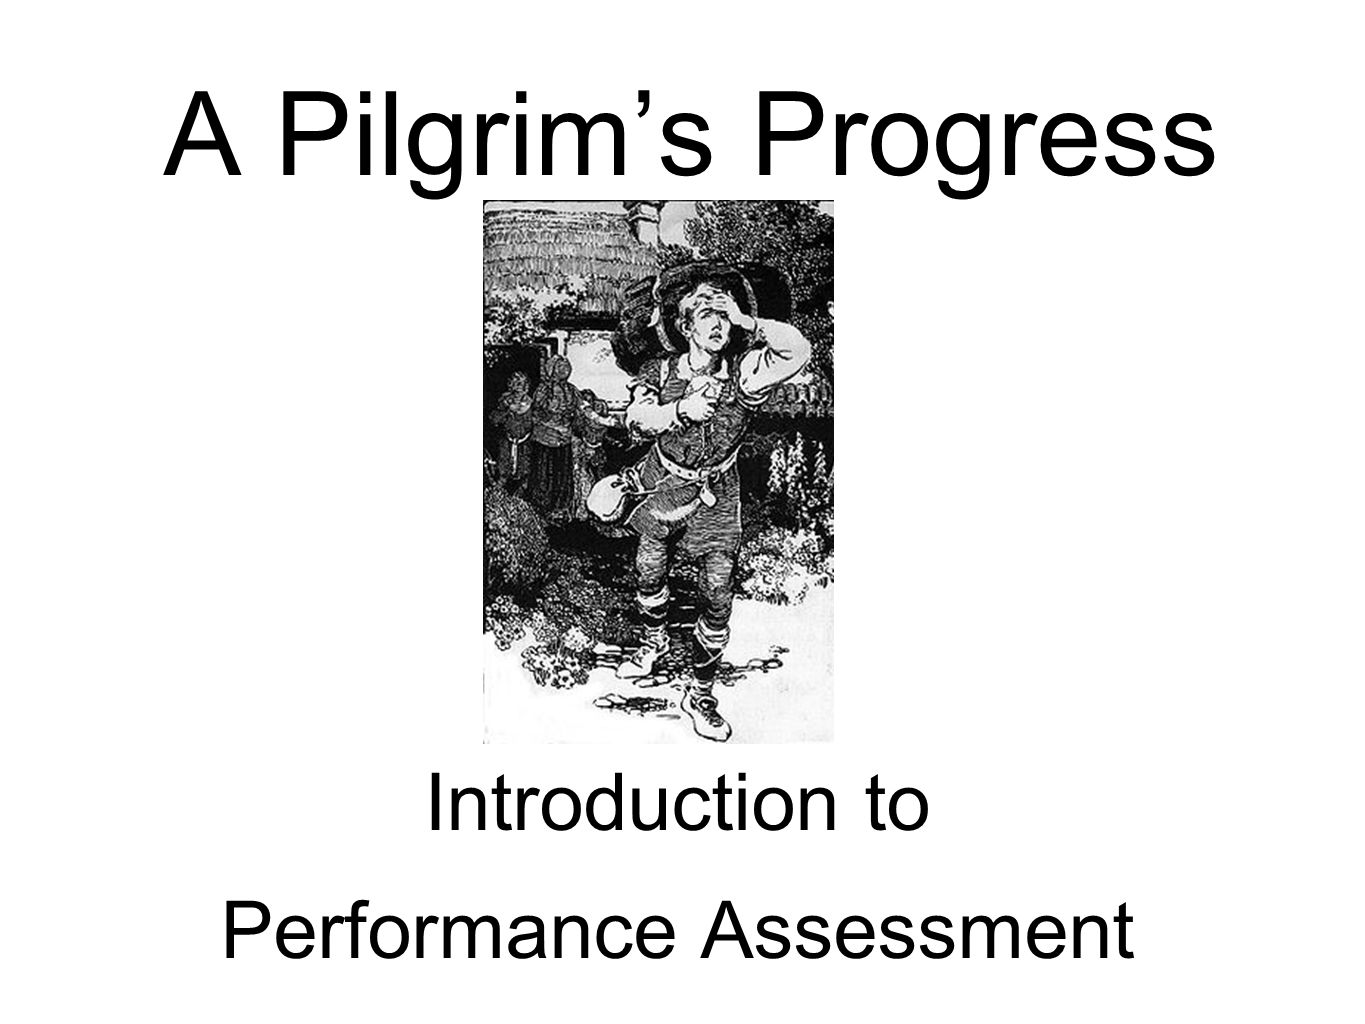 A Pilgrims Progress Introduction to Performance Assessment